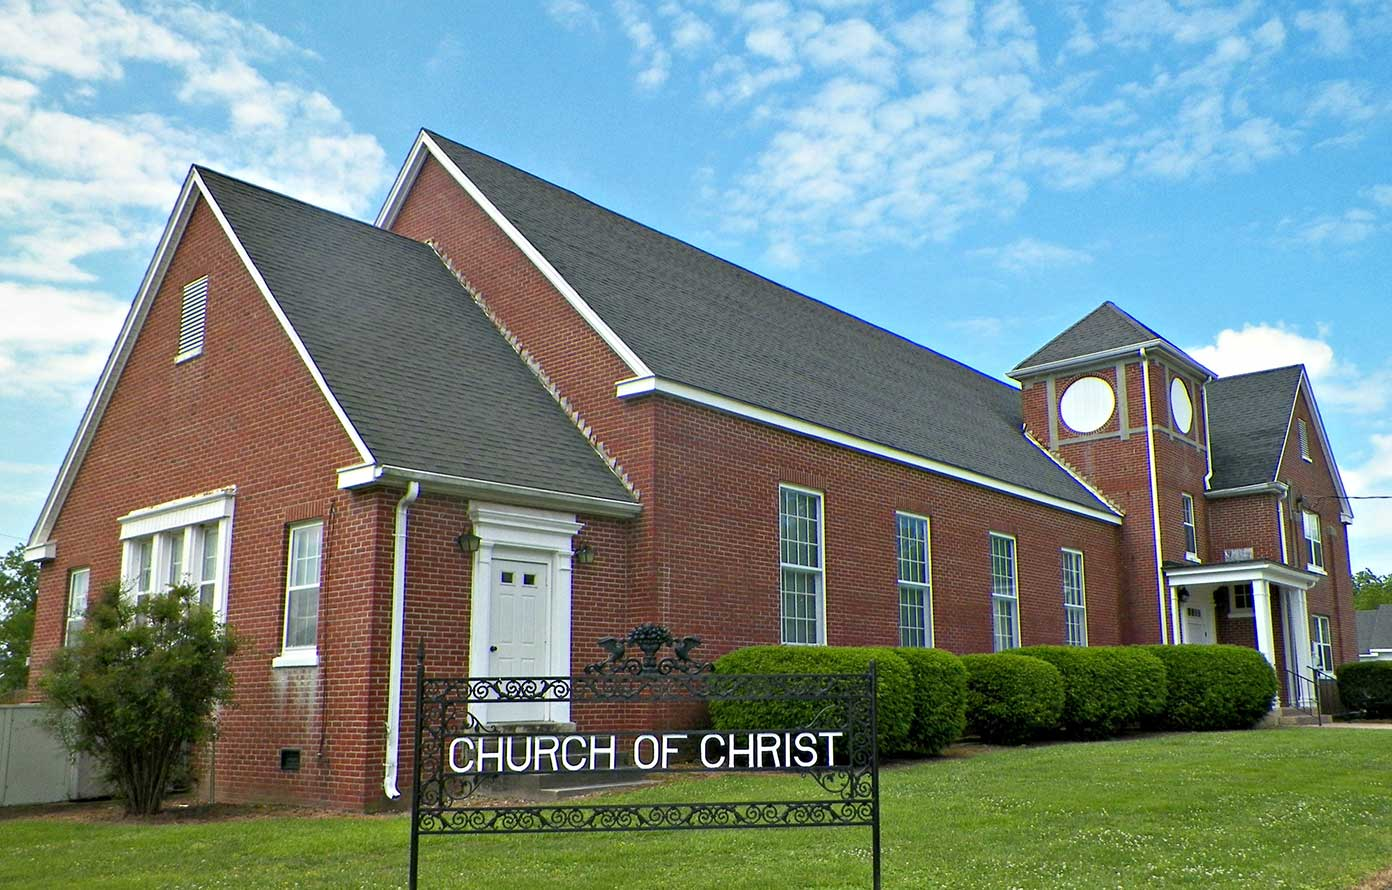 Obion Church of Christ